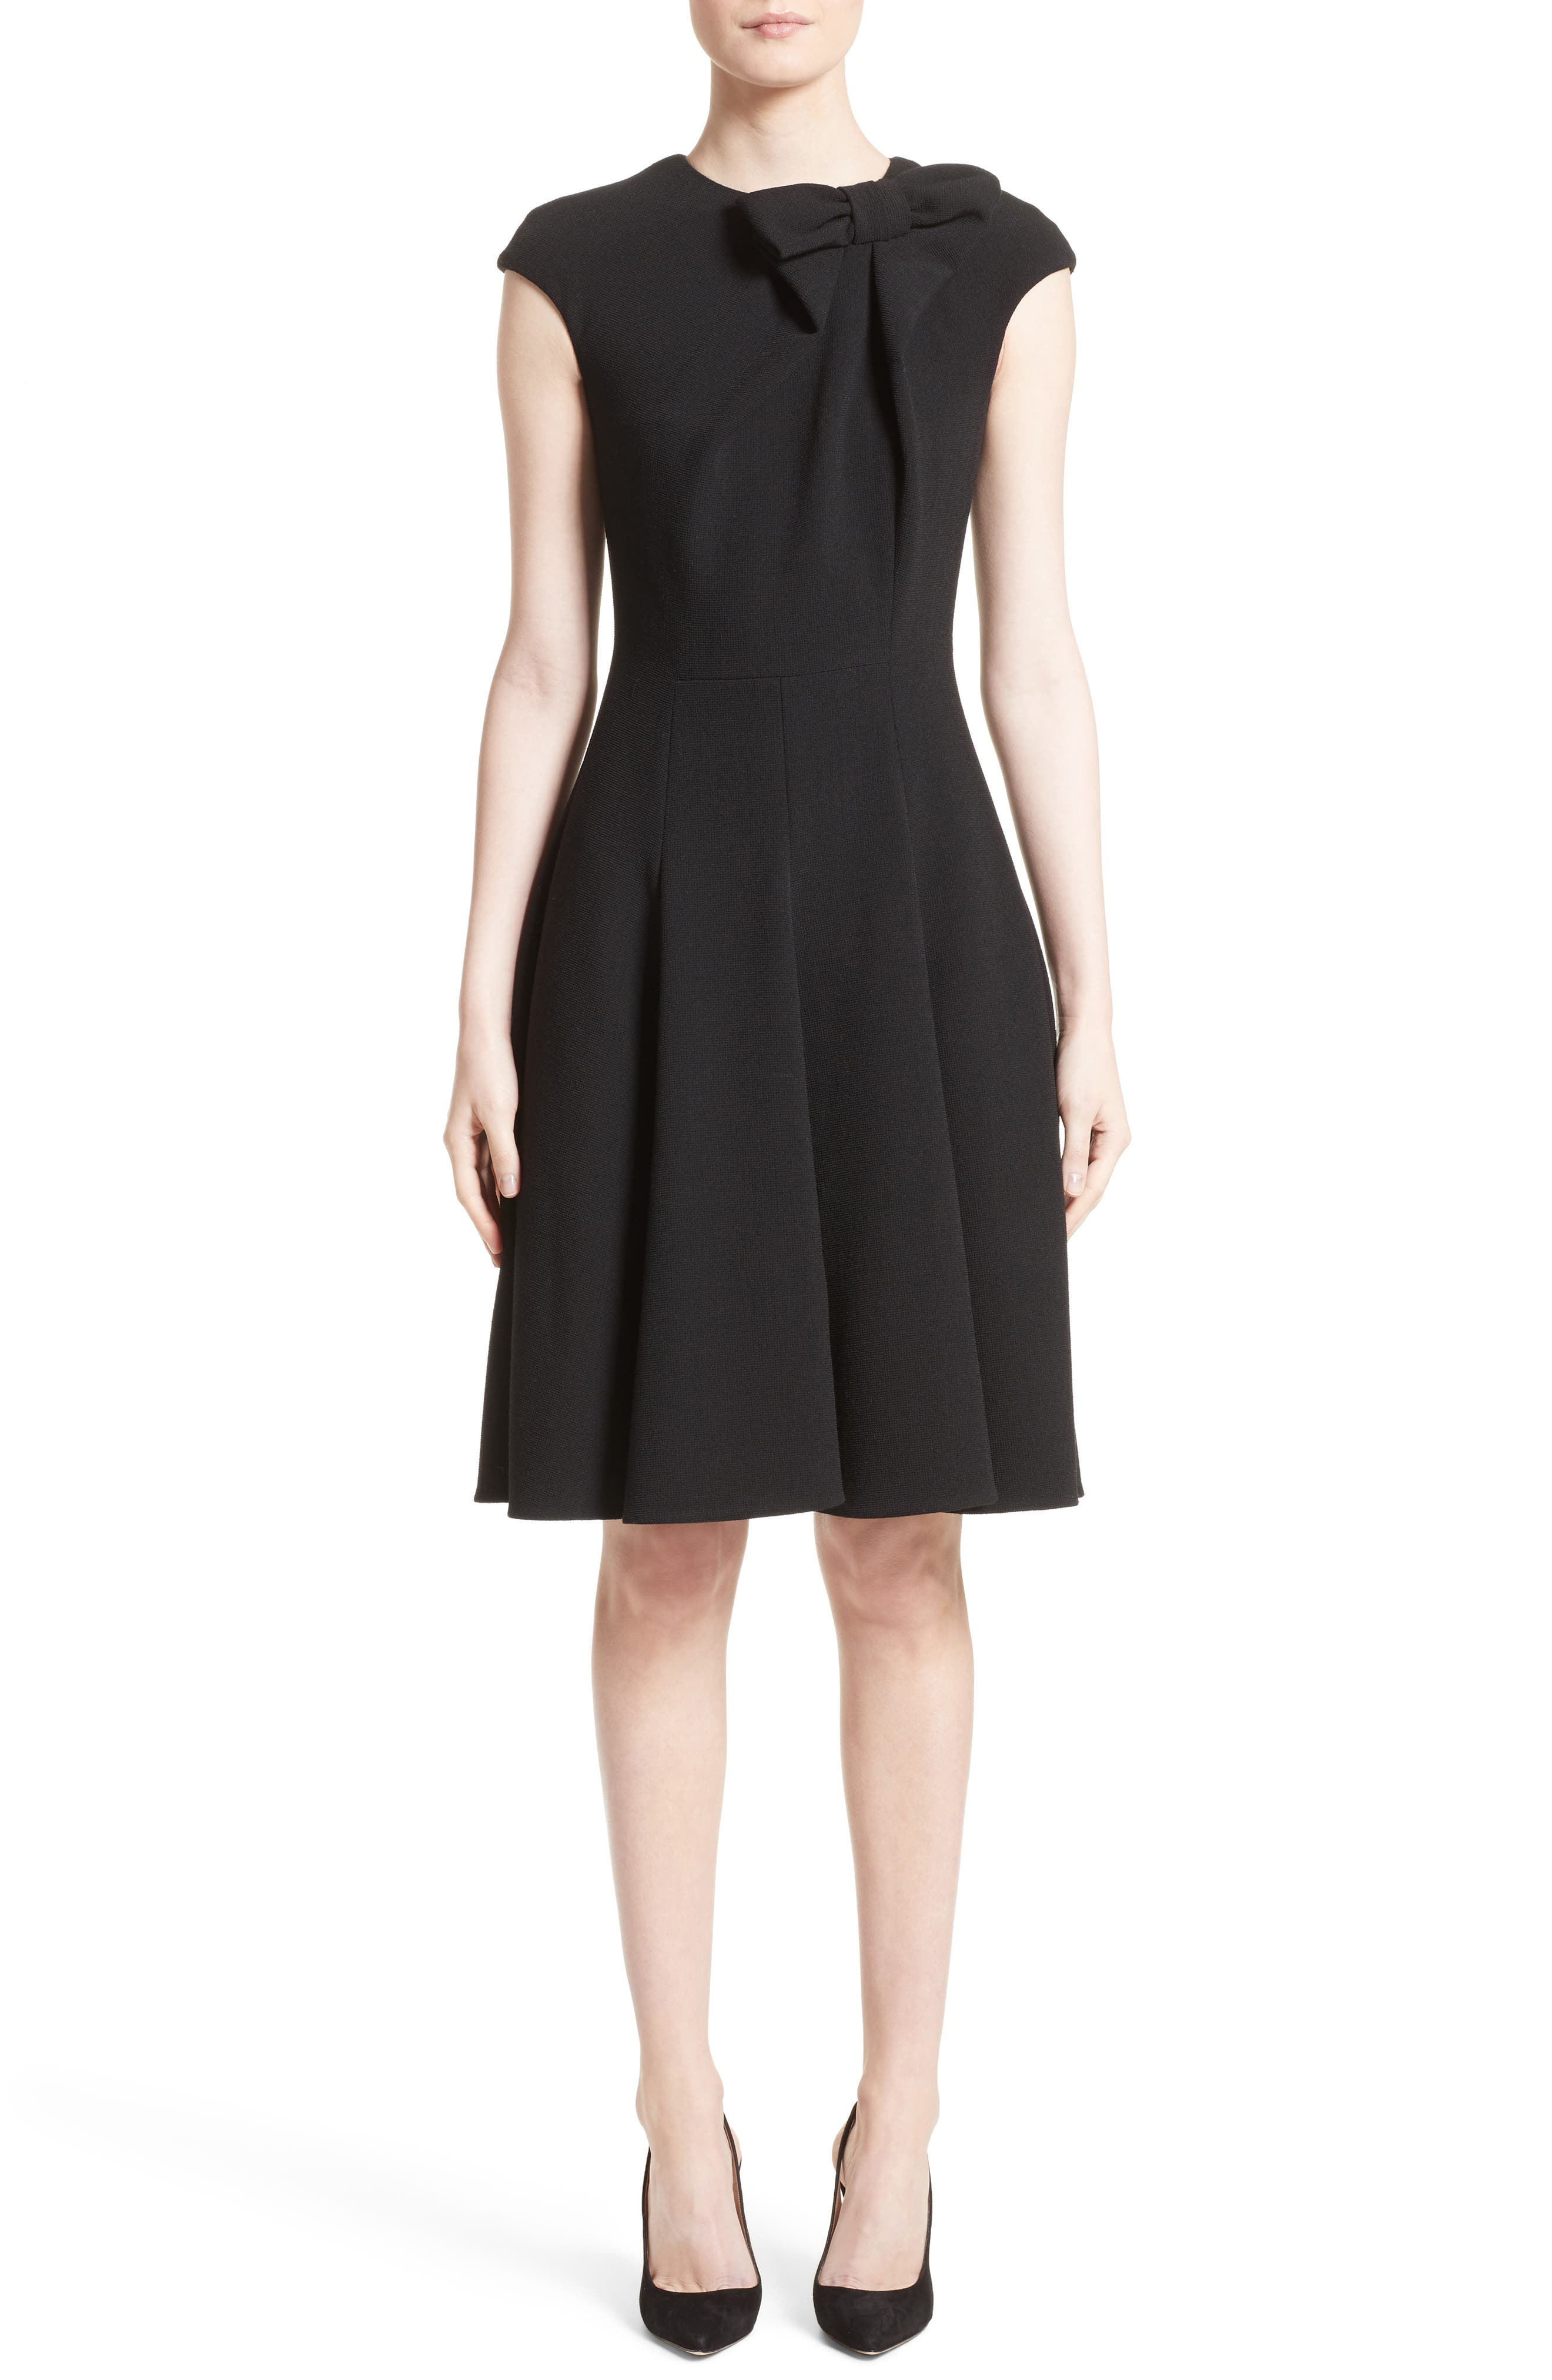 Main Image - Talbot Runhof Bow Detail Fit & Flare Dress